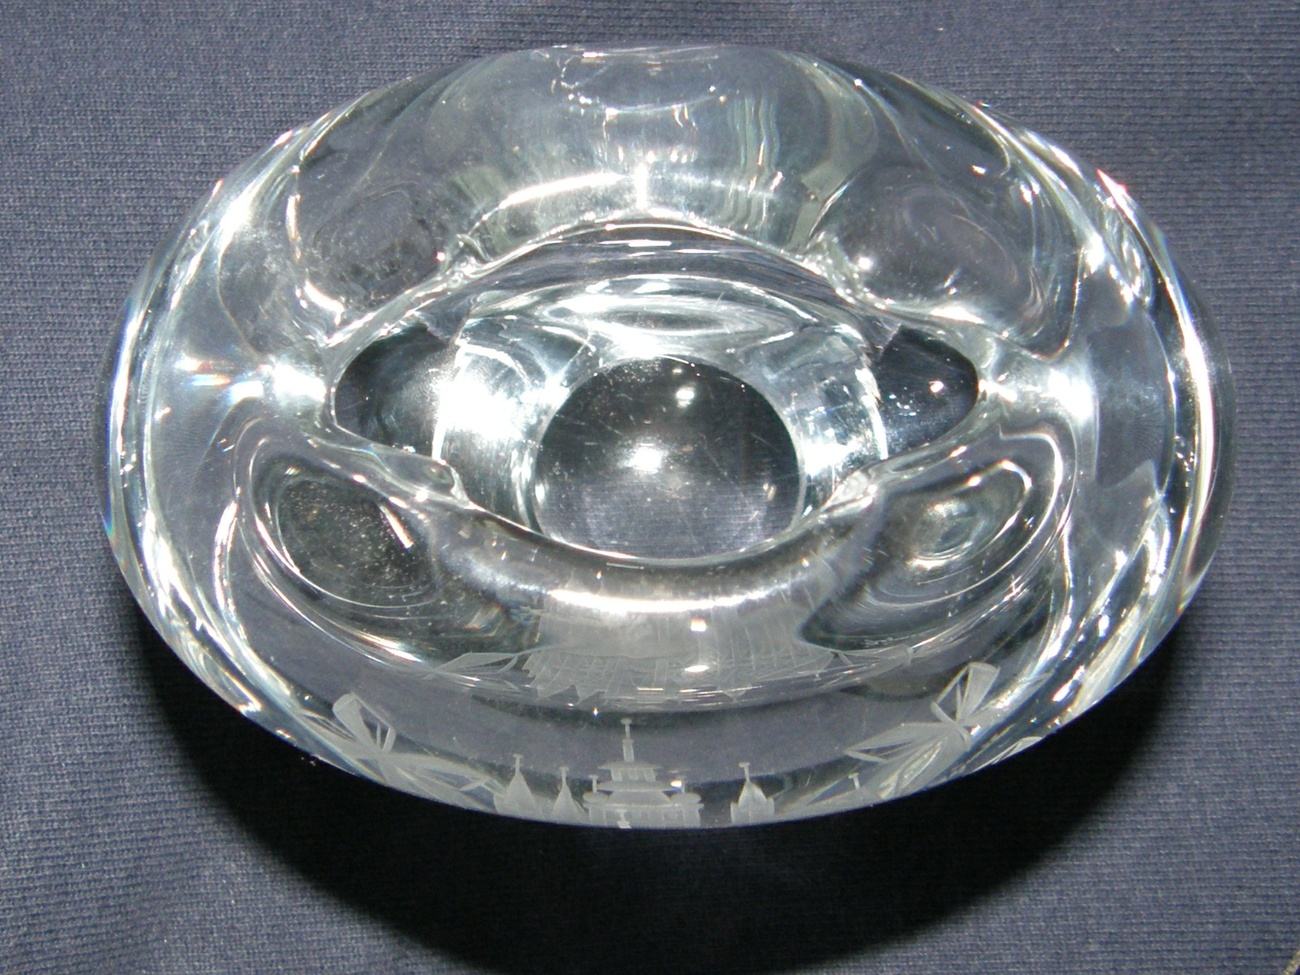 Commemorative Crystal Art Glass Vase/Paperweight - signed